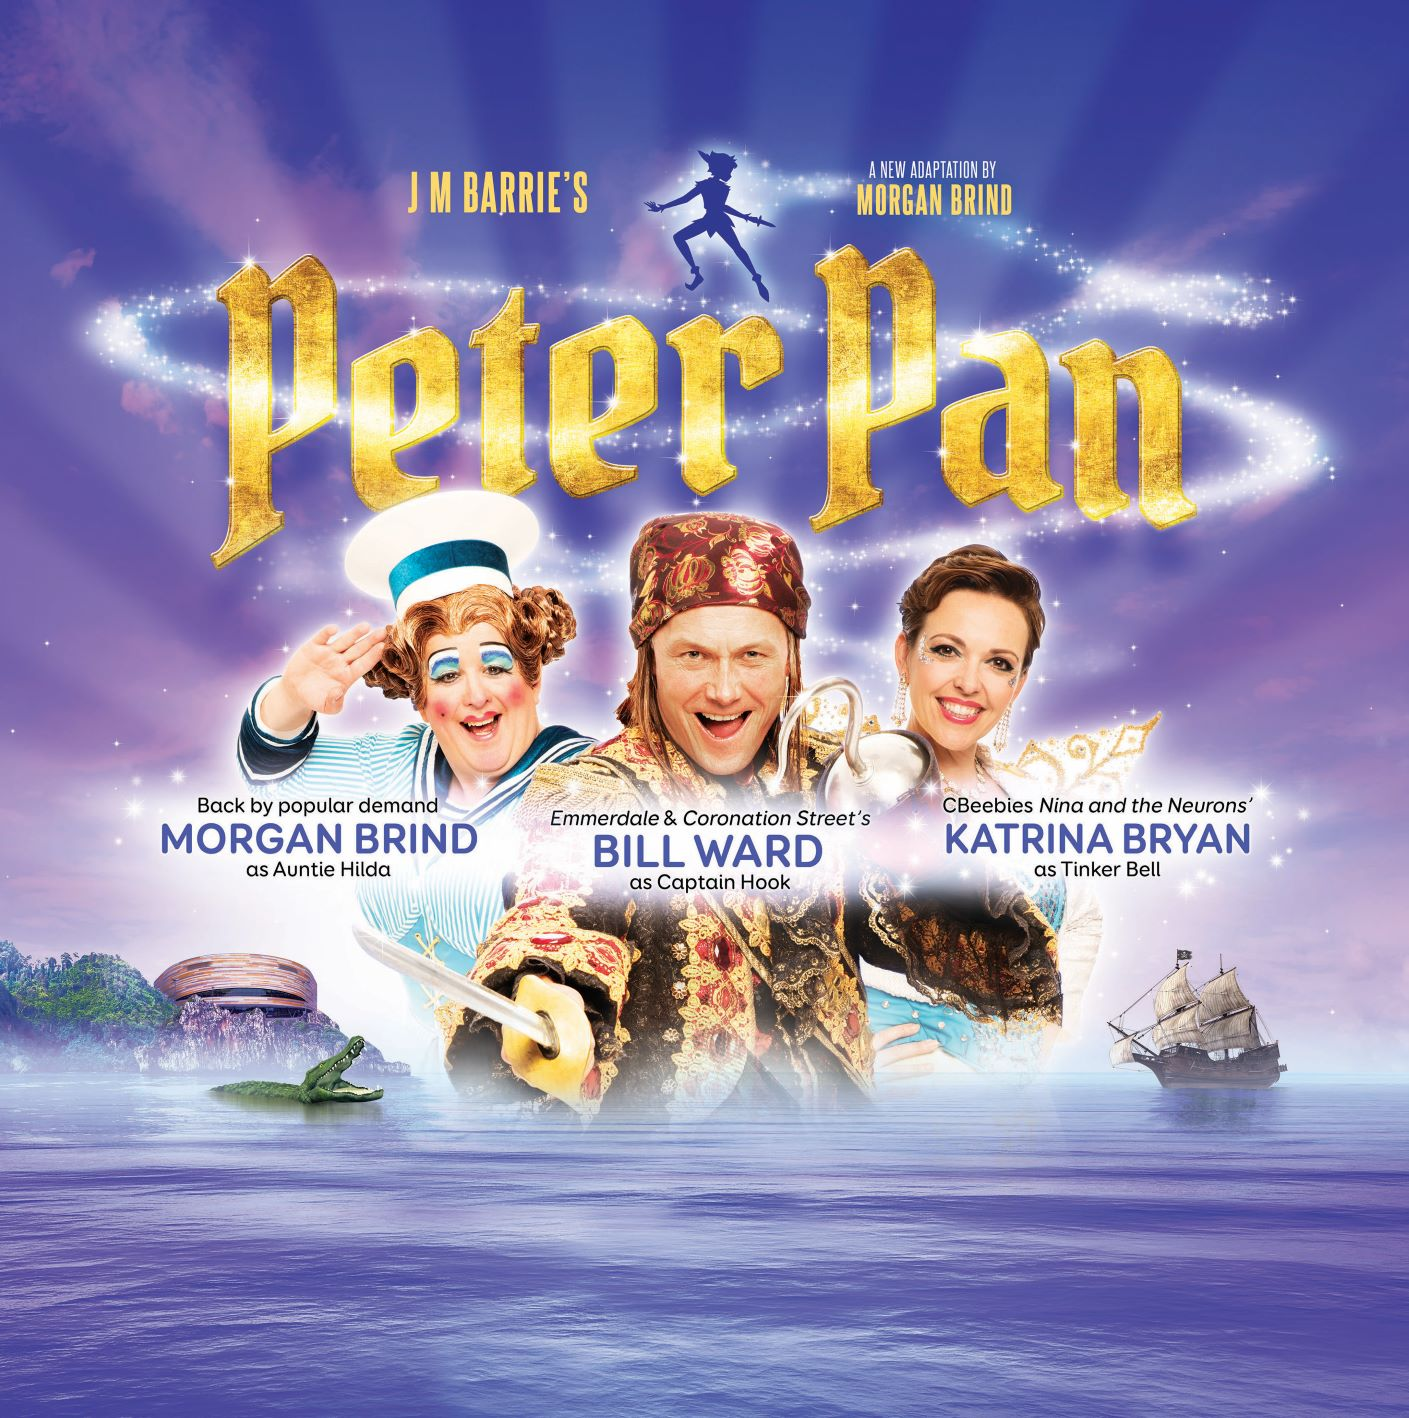 Peter Pan poster image resized for website